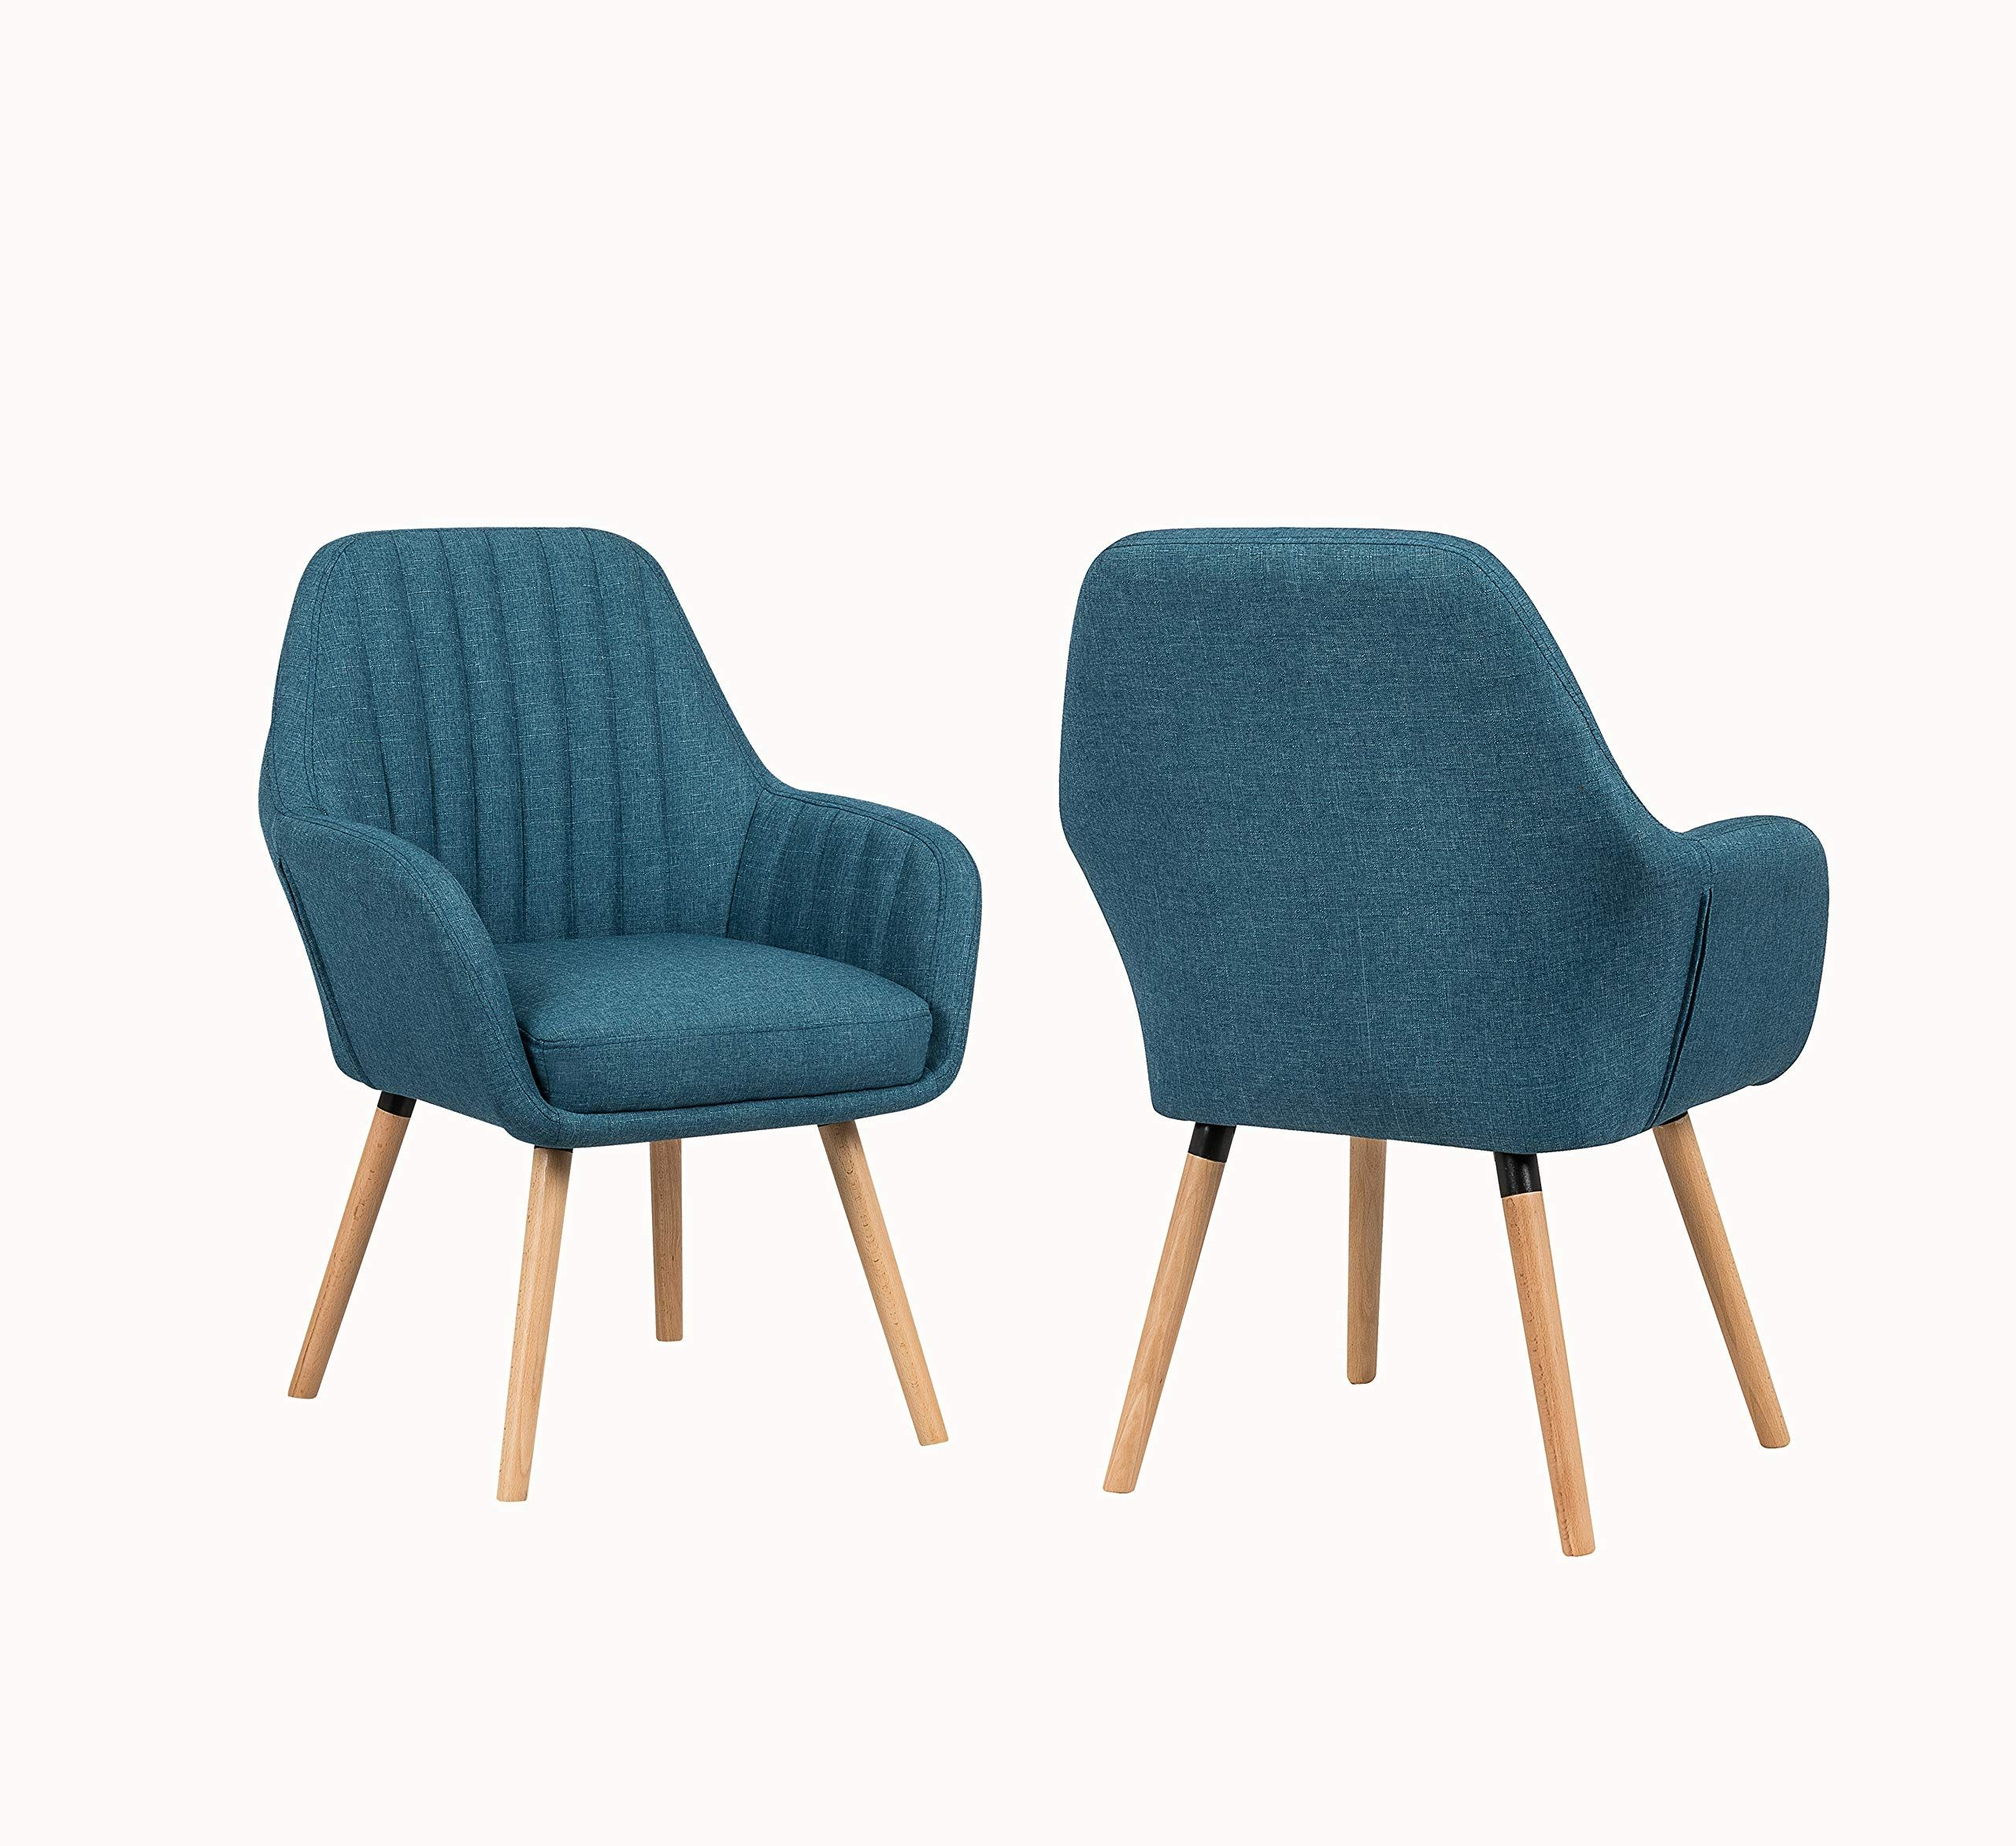 Cool Yeefya Contemporary Modern Muted Fabric Accent Arm Chair And Caraccident5 Cool Chair Designs And Ideas Caraccident5Info